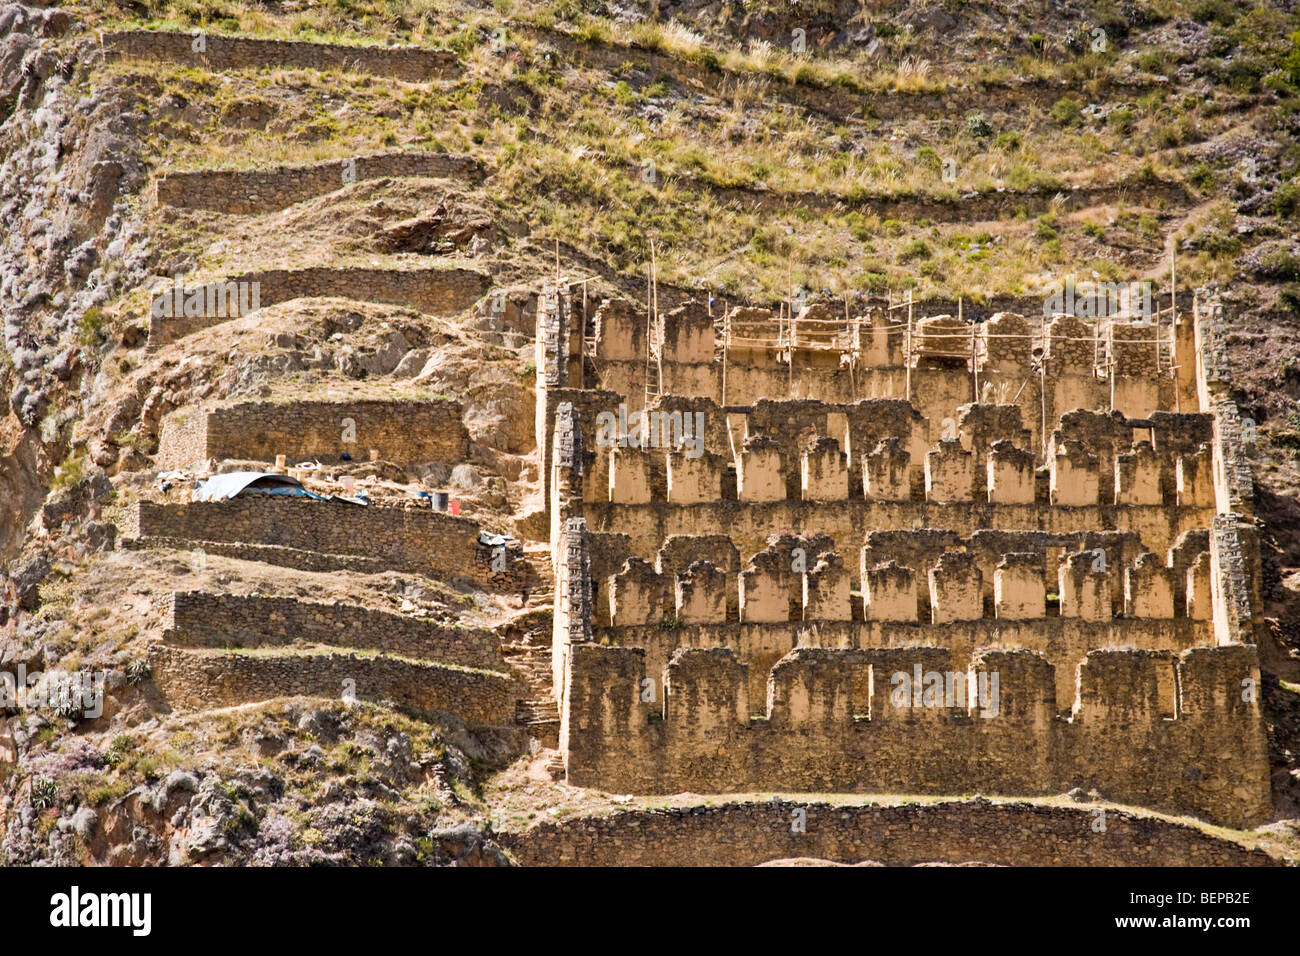 3 with Stock Photo Ancient Inca Structure And Gain Storage At Ollantaytambo In Peru 26307190 on 42555232 0 further Wohnen Im Landhausstil moreover Wisma Sanyan likewise The California Loft Of Dave Navarro together with 4dd53bcdfa7645a53caaca6f.